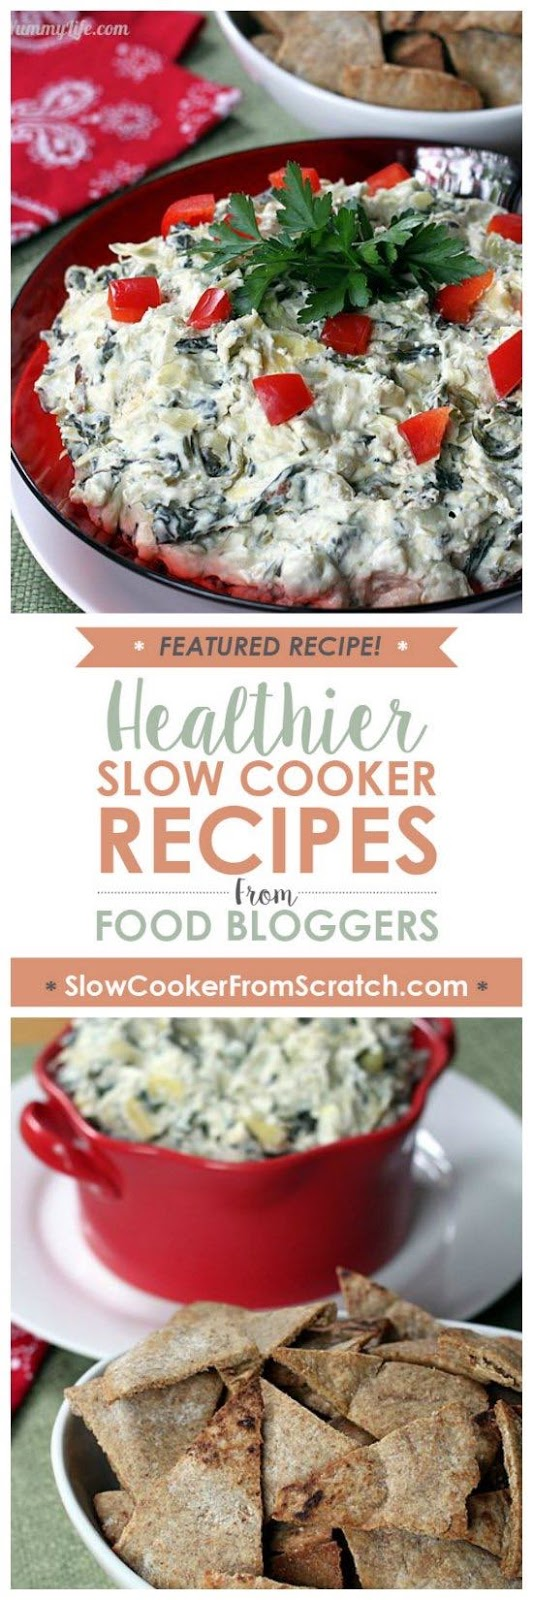 Slow Cooker Healthy Spinach Artichoke Dip from The Yummy Life featured on SlowCookerFromScratch.com